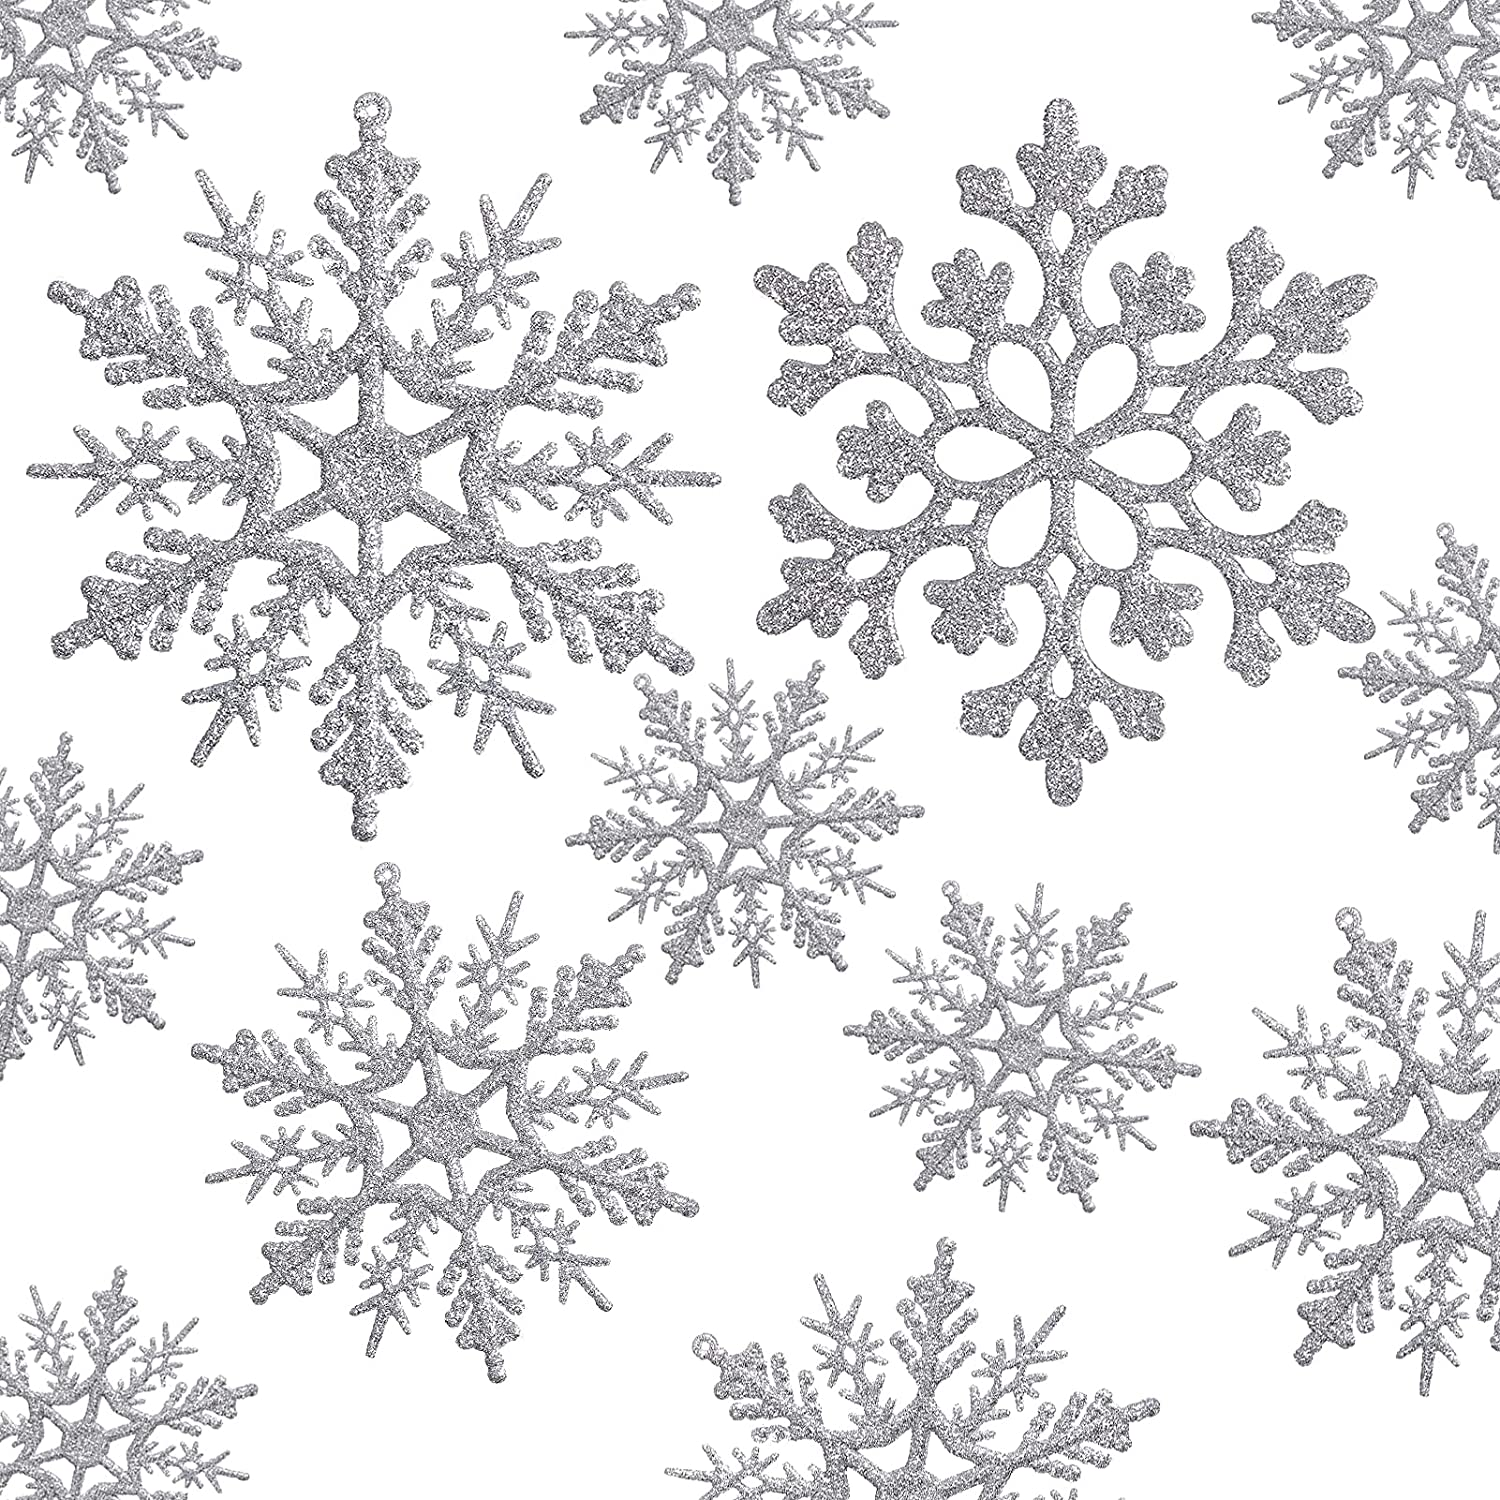 36pcs Silver Snowflake Ornaments Plastic Glitter Snow Flakes Ornaments for Winter Christmas Tree Decorations Size Varies Craft Snowflakes